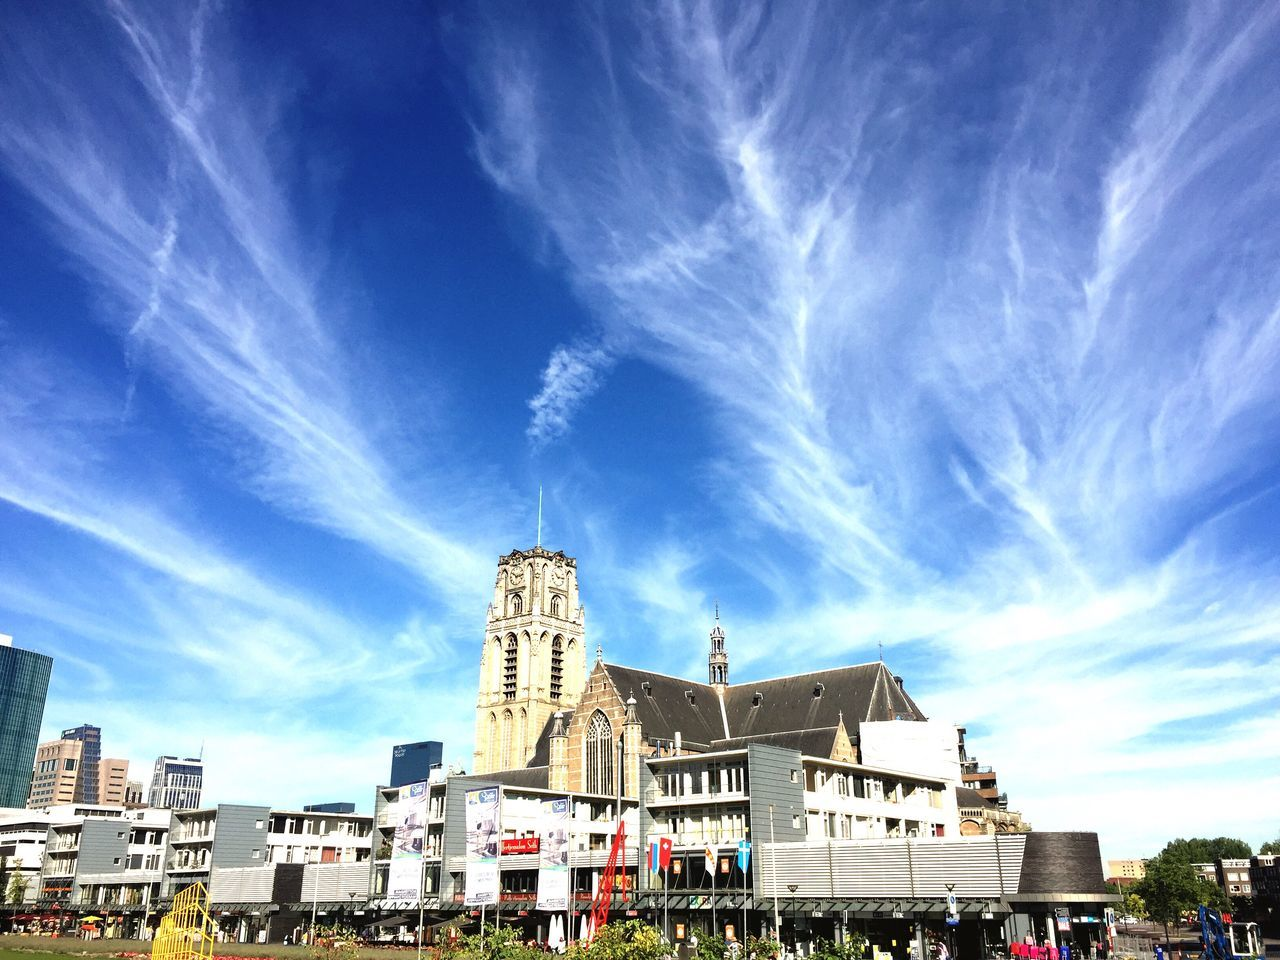 architecture, building exterior, built structure, sky, cloud - sky, blue, city, day, outdoors, travel destinations, sunlight, spirituality, large group of people, cityscape, people